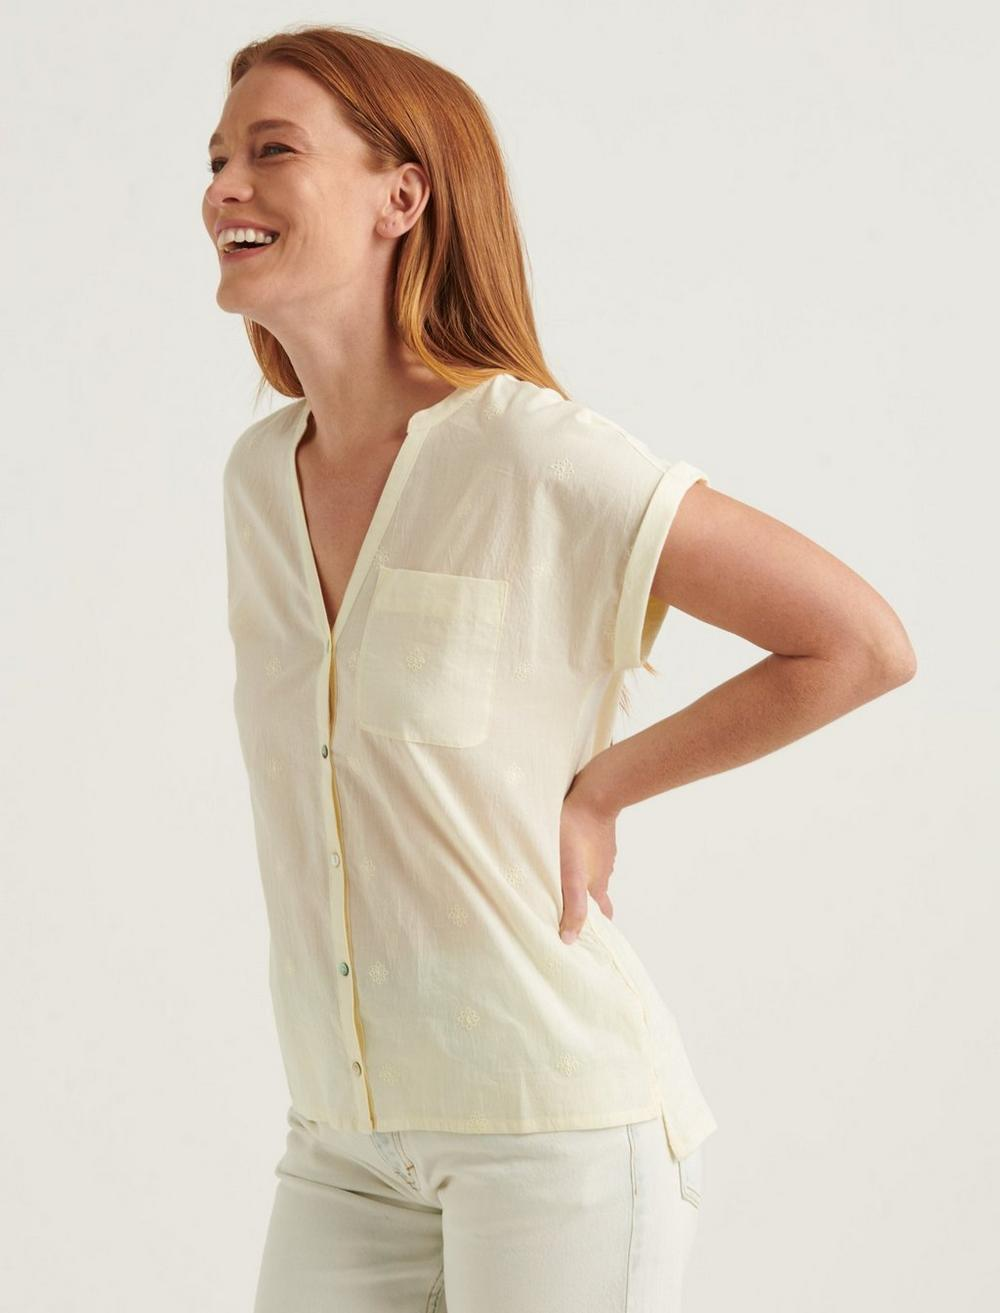 SHORT SLEEVE WOVEN MIX BUTTON DOWN TOP, image 3